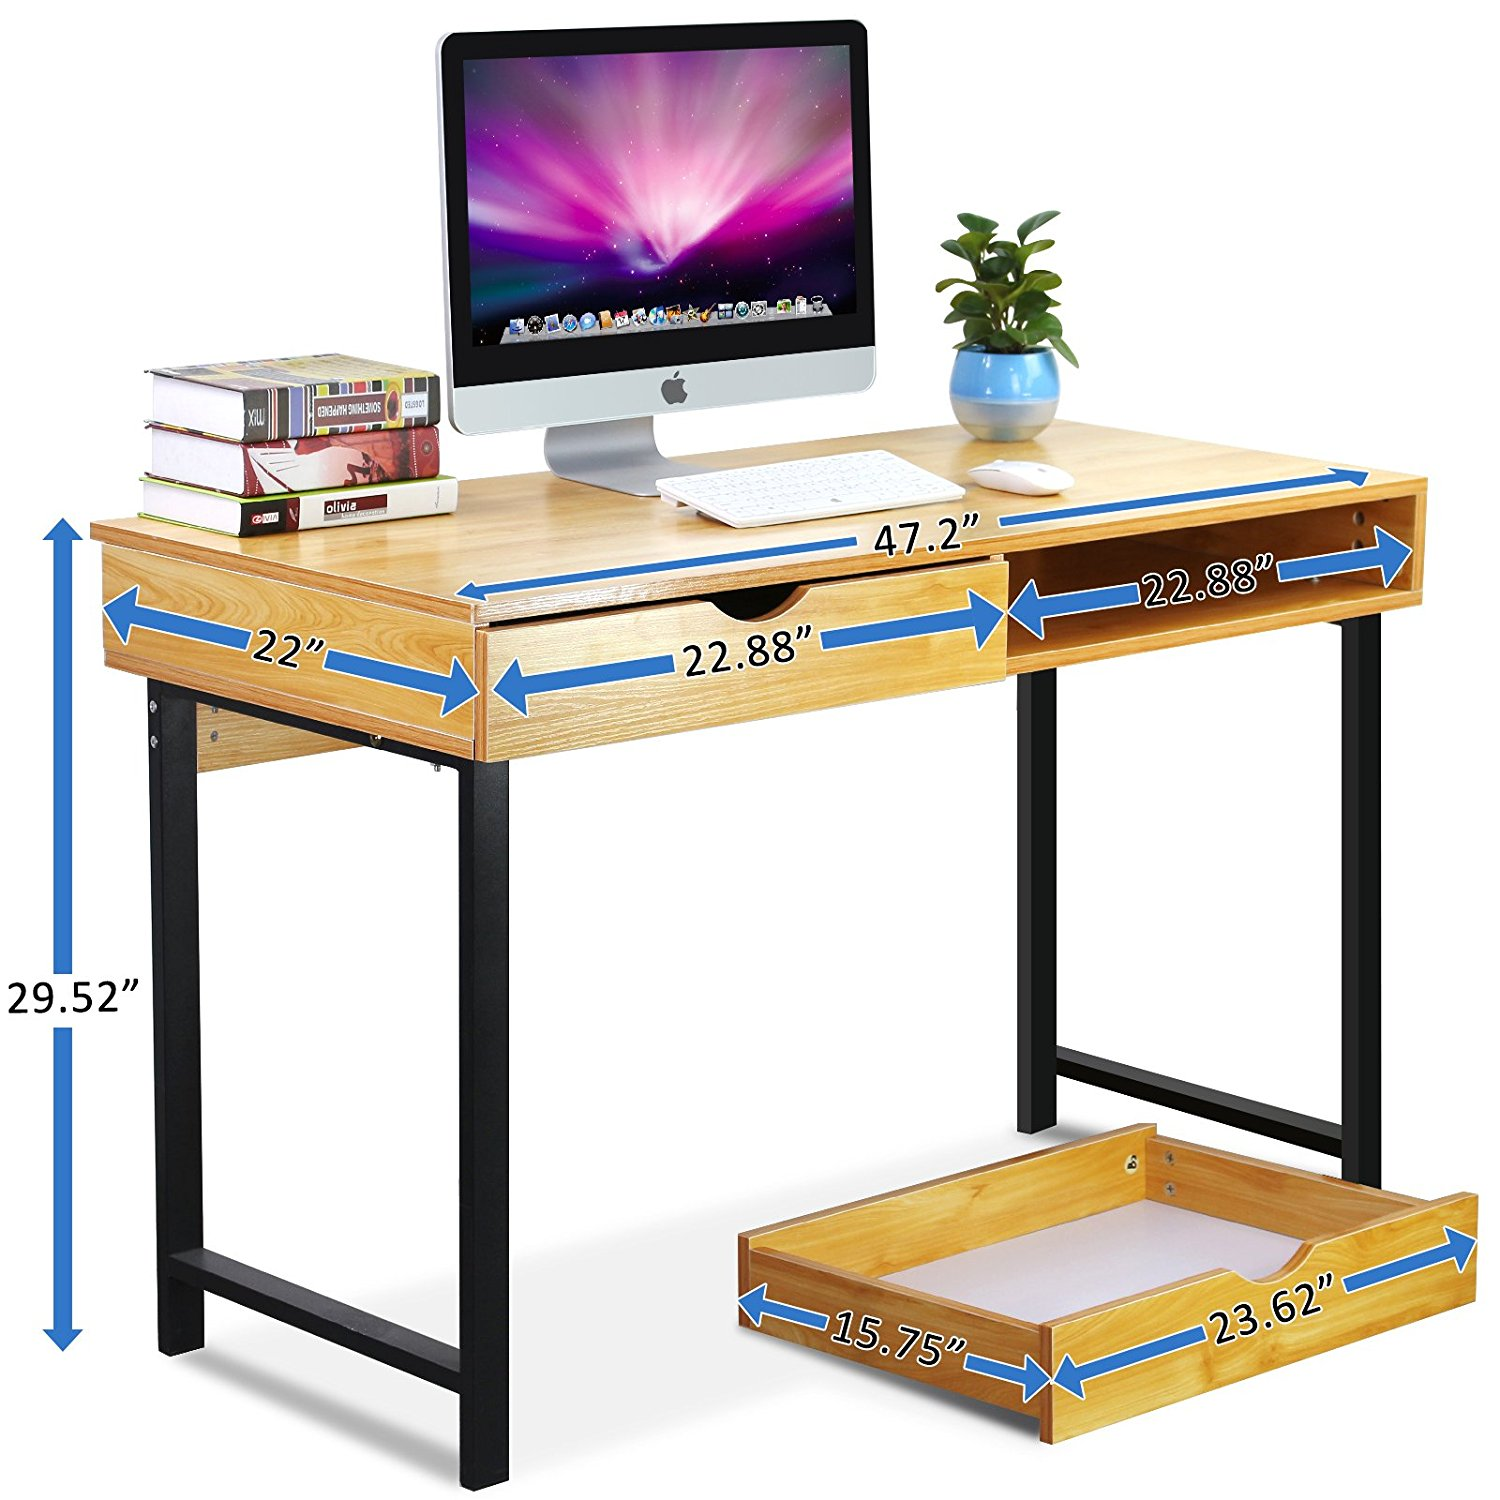 Computer office desk modern stylish 47 home office study table writing desk workstation with 2 drawers pear wood color